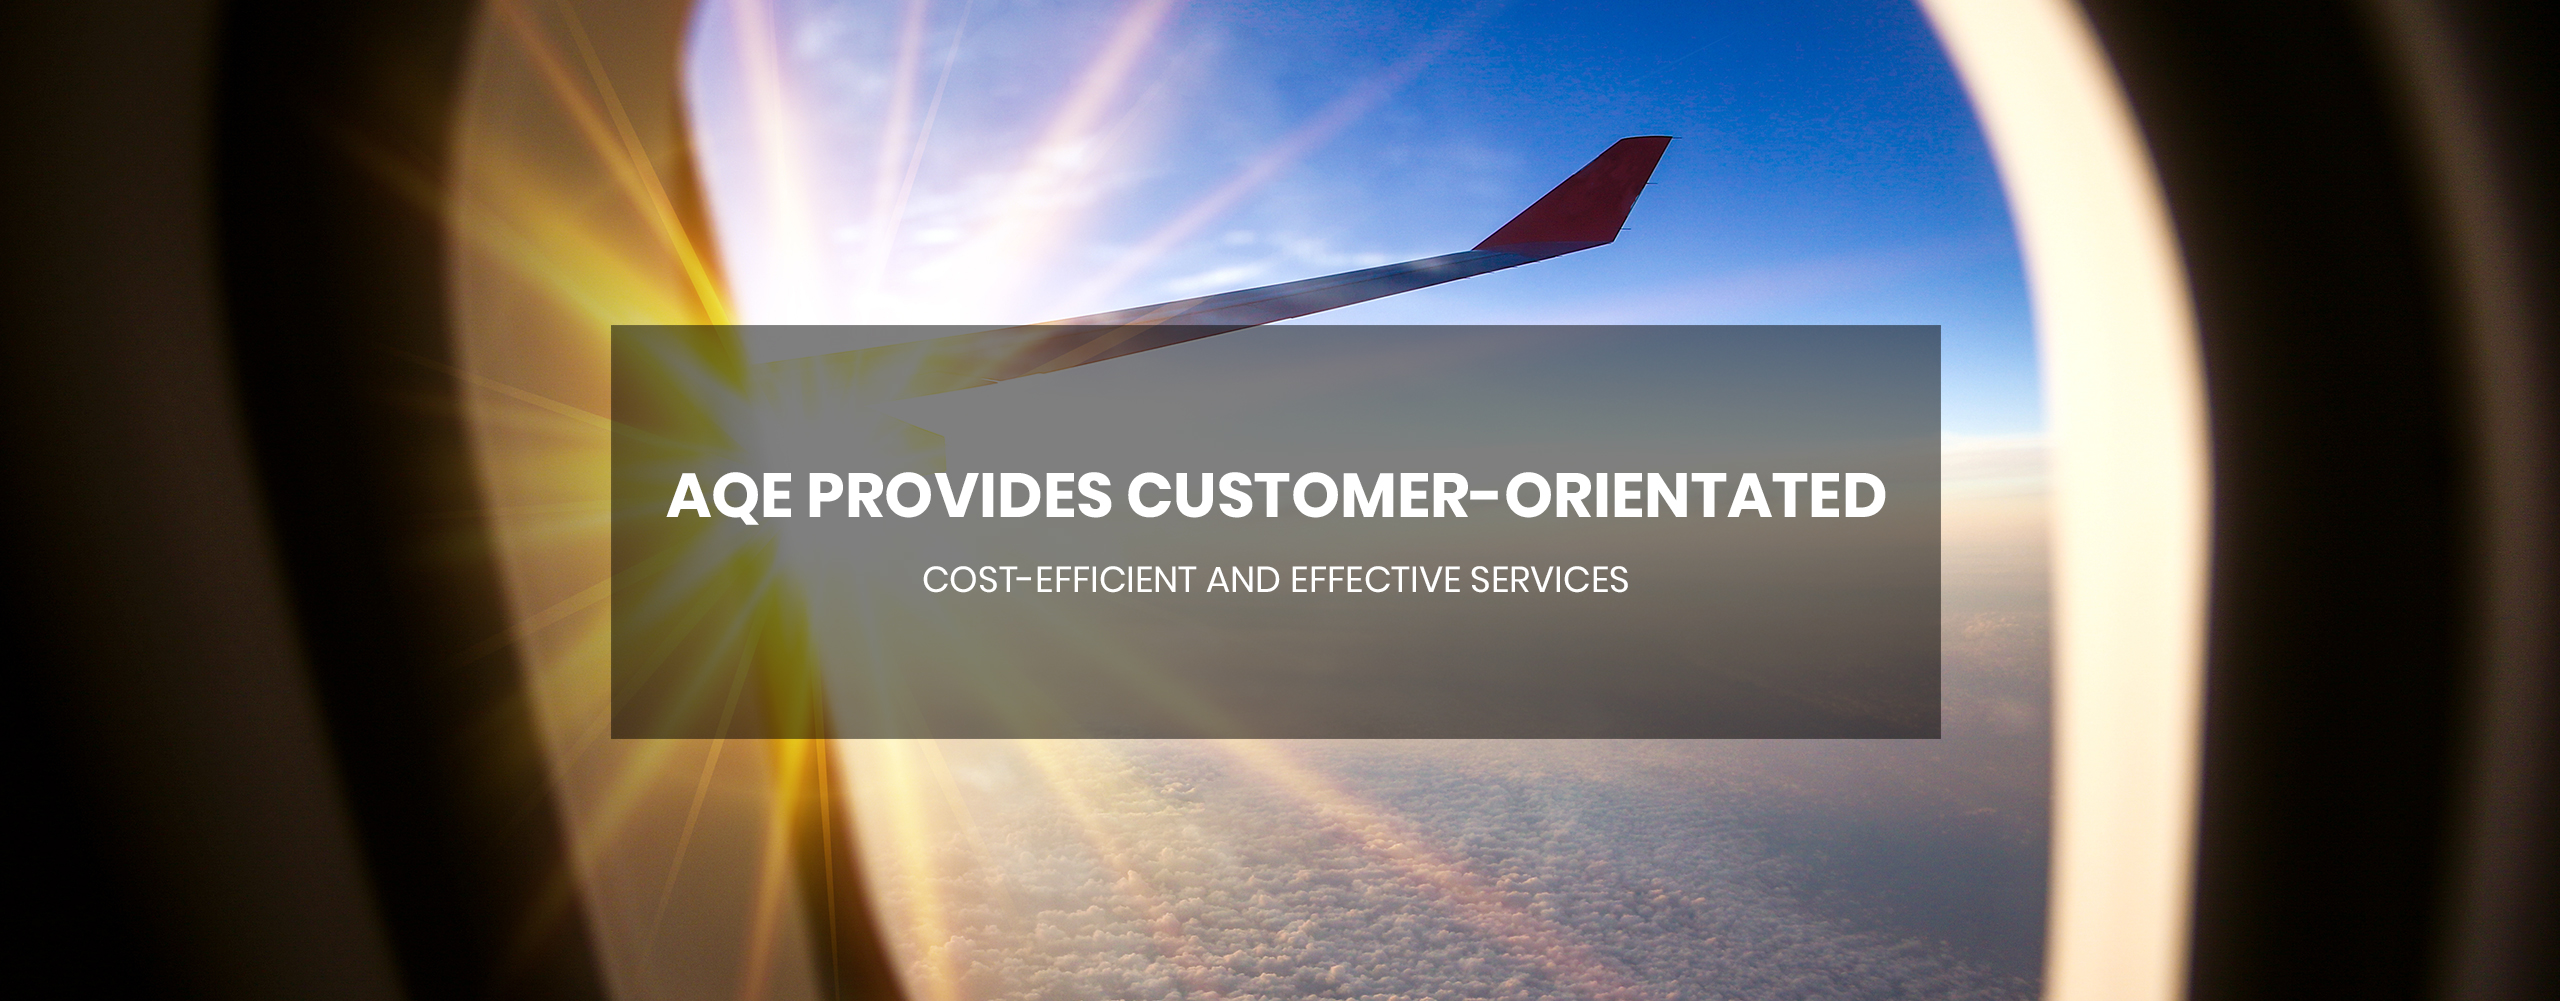 AQE provides customer-orientated cost-efficient and effective services